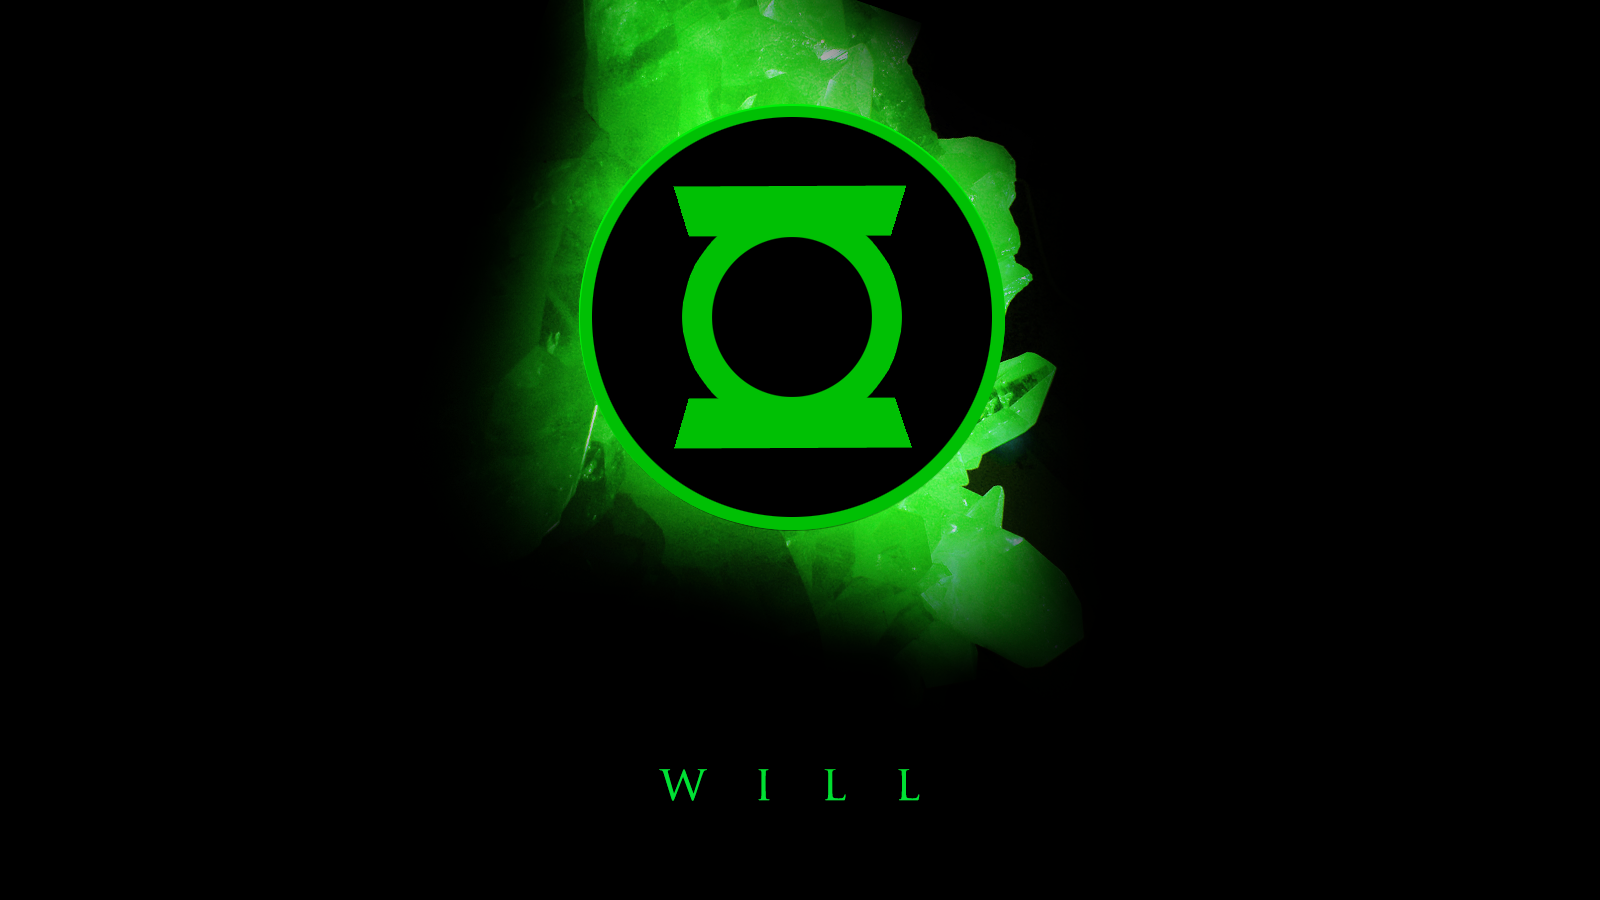 Free download Green Lantern Logo Wallpapers [1600x900] for your Desktop, Mobile & Tablet